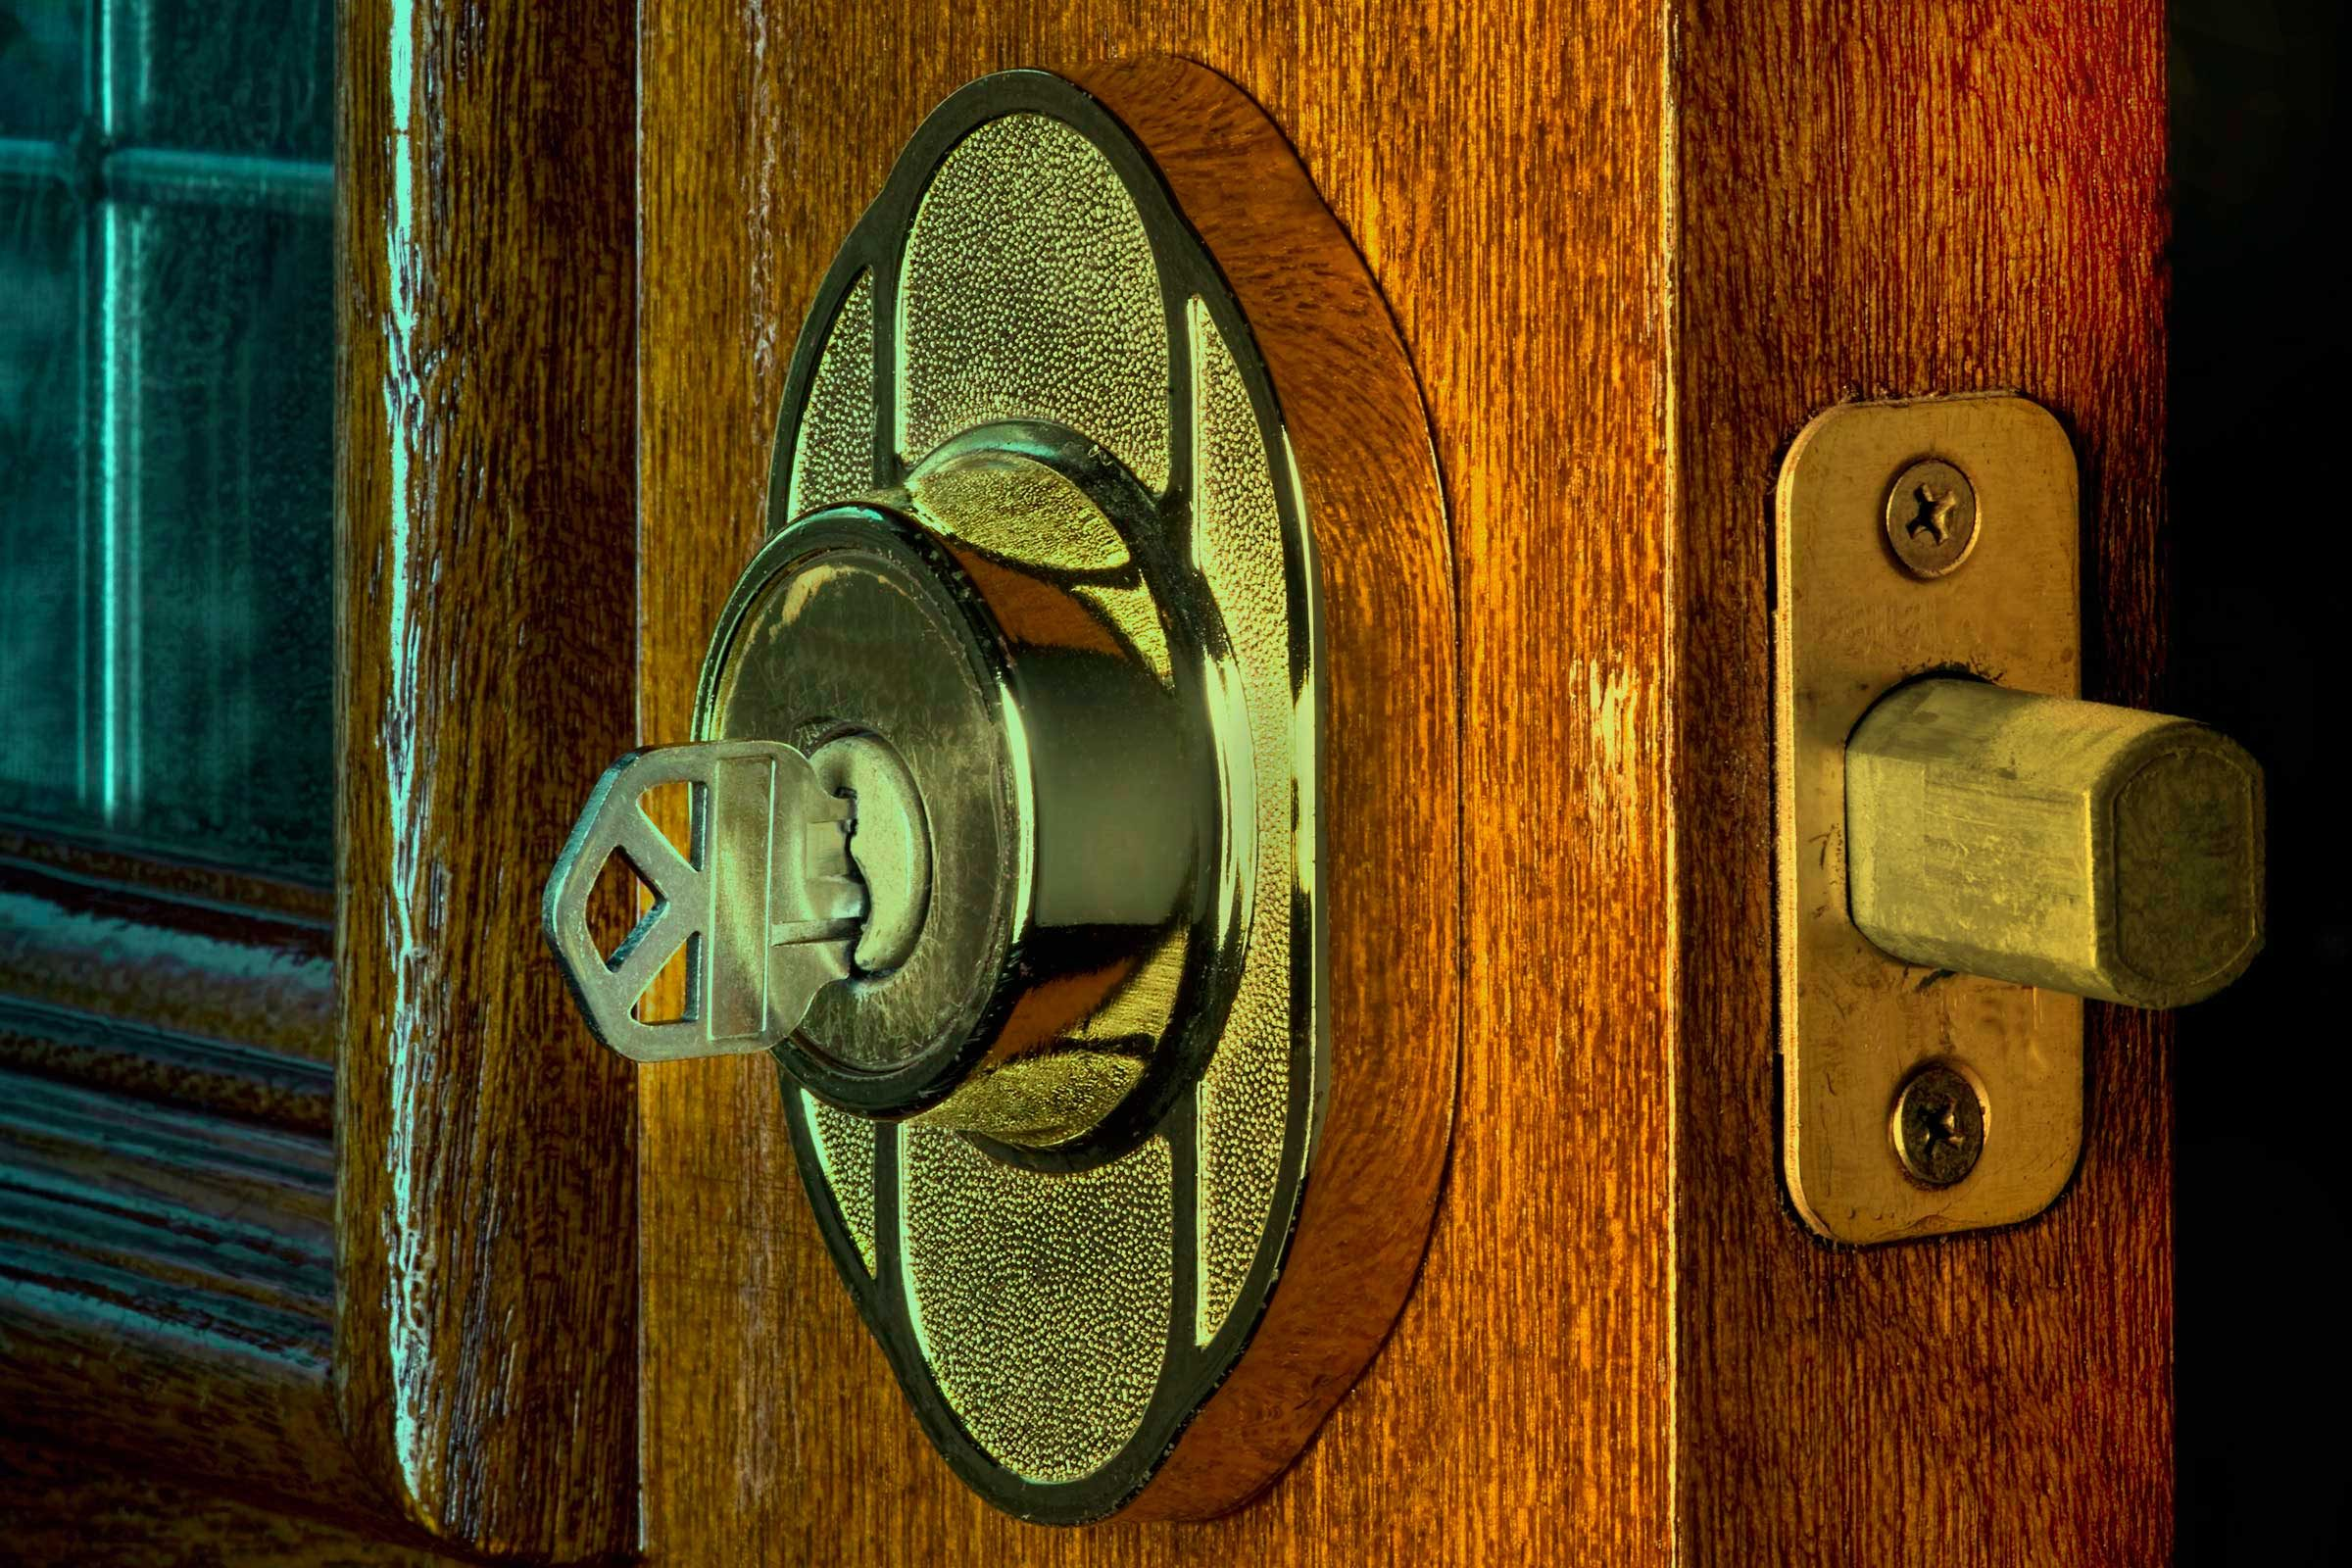 House locksmith secrets that pros wont tell you readers digest the best lock is a deadbolt thats properly installed rubansaba